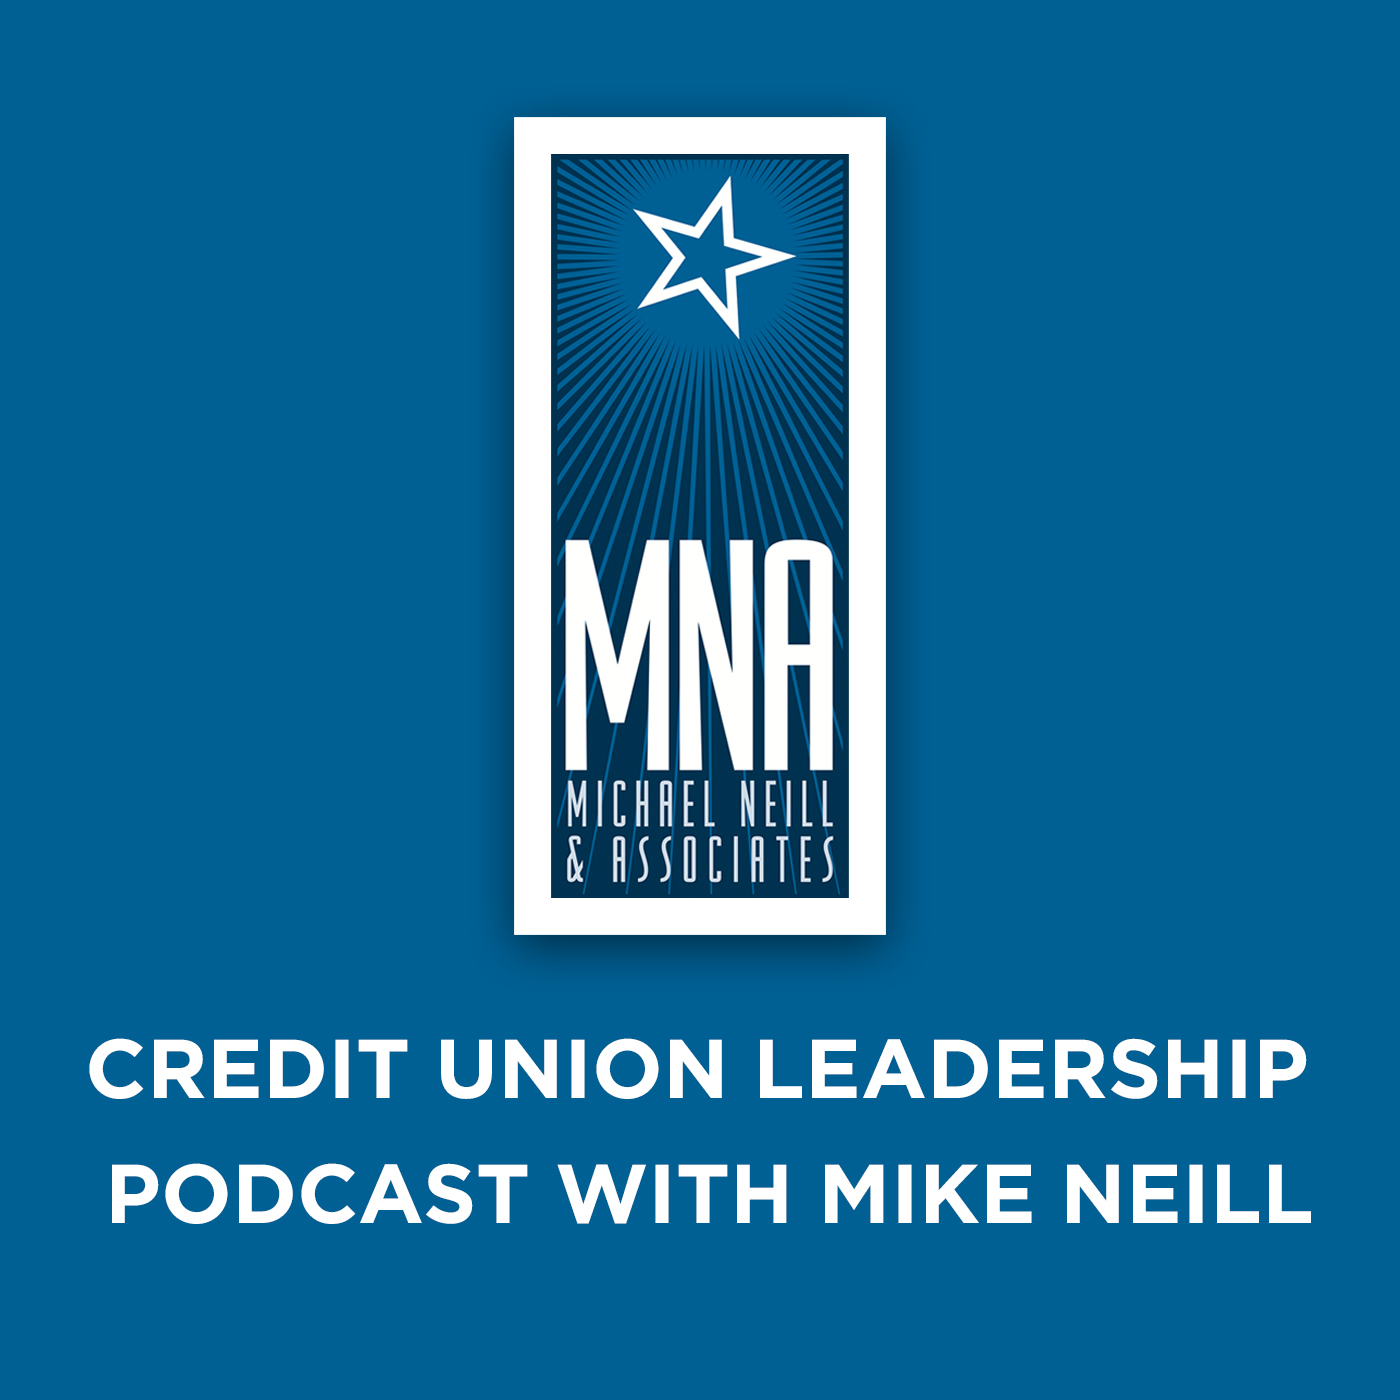 The Credit Union Leadership Podcast